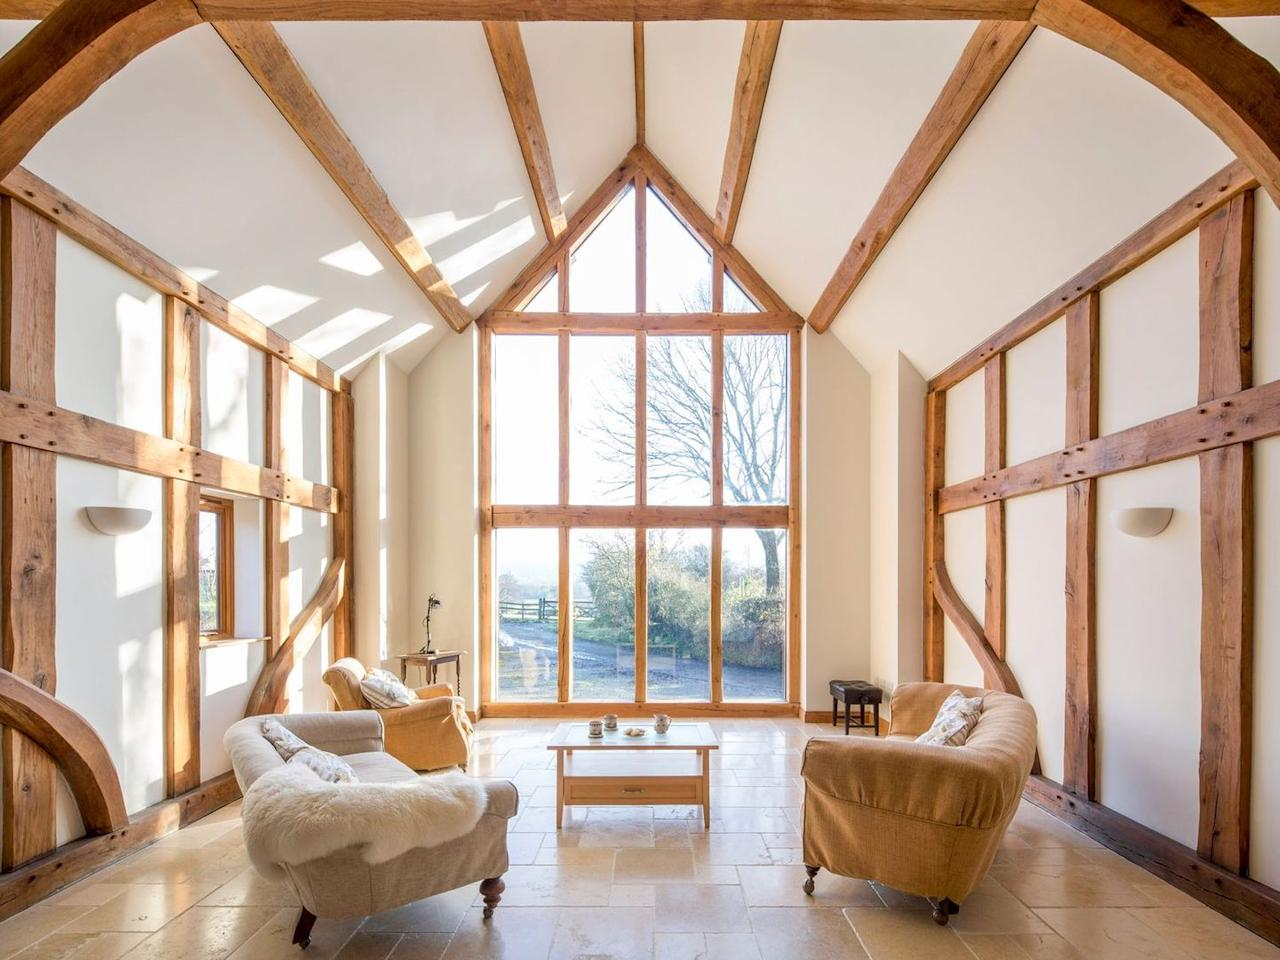 "<p>This stunning 16th century couples' retreat in Powys is a barn conversion which sits in the owner's three acres of private grounds. With floor-to-ceiling windows and a warm wood burning stove to relax in front of with a glass of bubbly, this is the perfect base for couples planning a remote countryside break.  </p><p>It's incredibly spacious and private, with features including a king-sized bed, a luxurious kitchen for cooking romantic dinners and gorgeous surroundings. You might wish to hike the nearby hills or take a trip to the market town of Bishop's Castle.</p><p><a class=""body-btn-link"" href=""https://go.redirectingat.com?id=127X1599956&url=https%3A%2F%2Fwww.sykescottages.co.uk%2Fcottage%2FMid-Wales-Cardigan-Bay-Snead%2FTy-Camlad-17187.html&sref=https%3A%2F%2Fwww.redonline.co.uk%2Ftravel%2Finspiration%2Fg28750924%2Fcouples-retreat-uk%2F"" target=""_blank"">SEE INSIDE</a> <strong>From £275 for three nights</strong></p>"